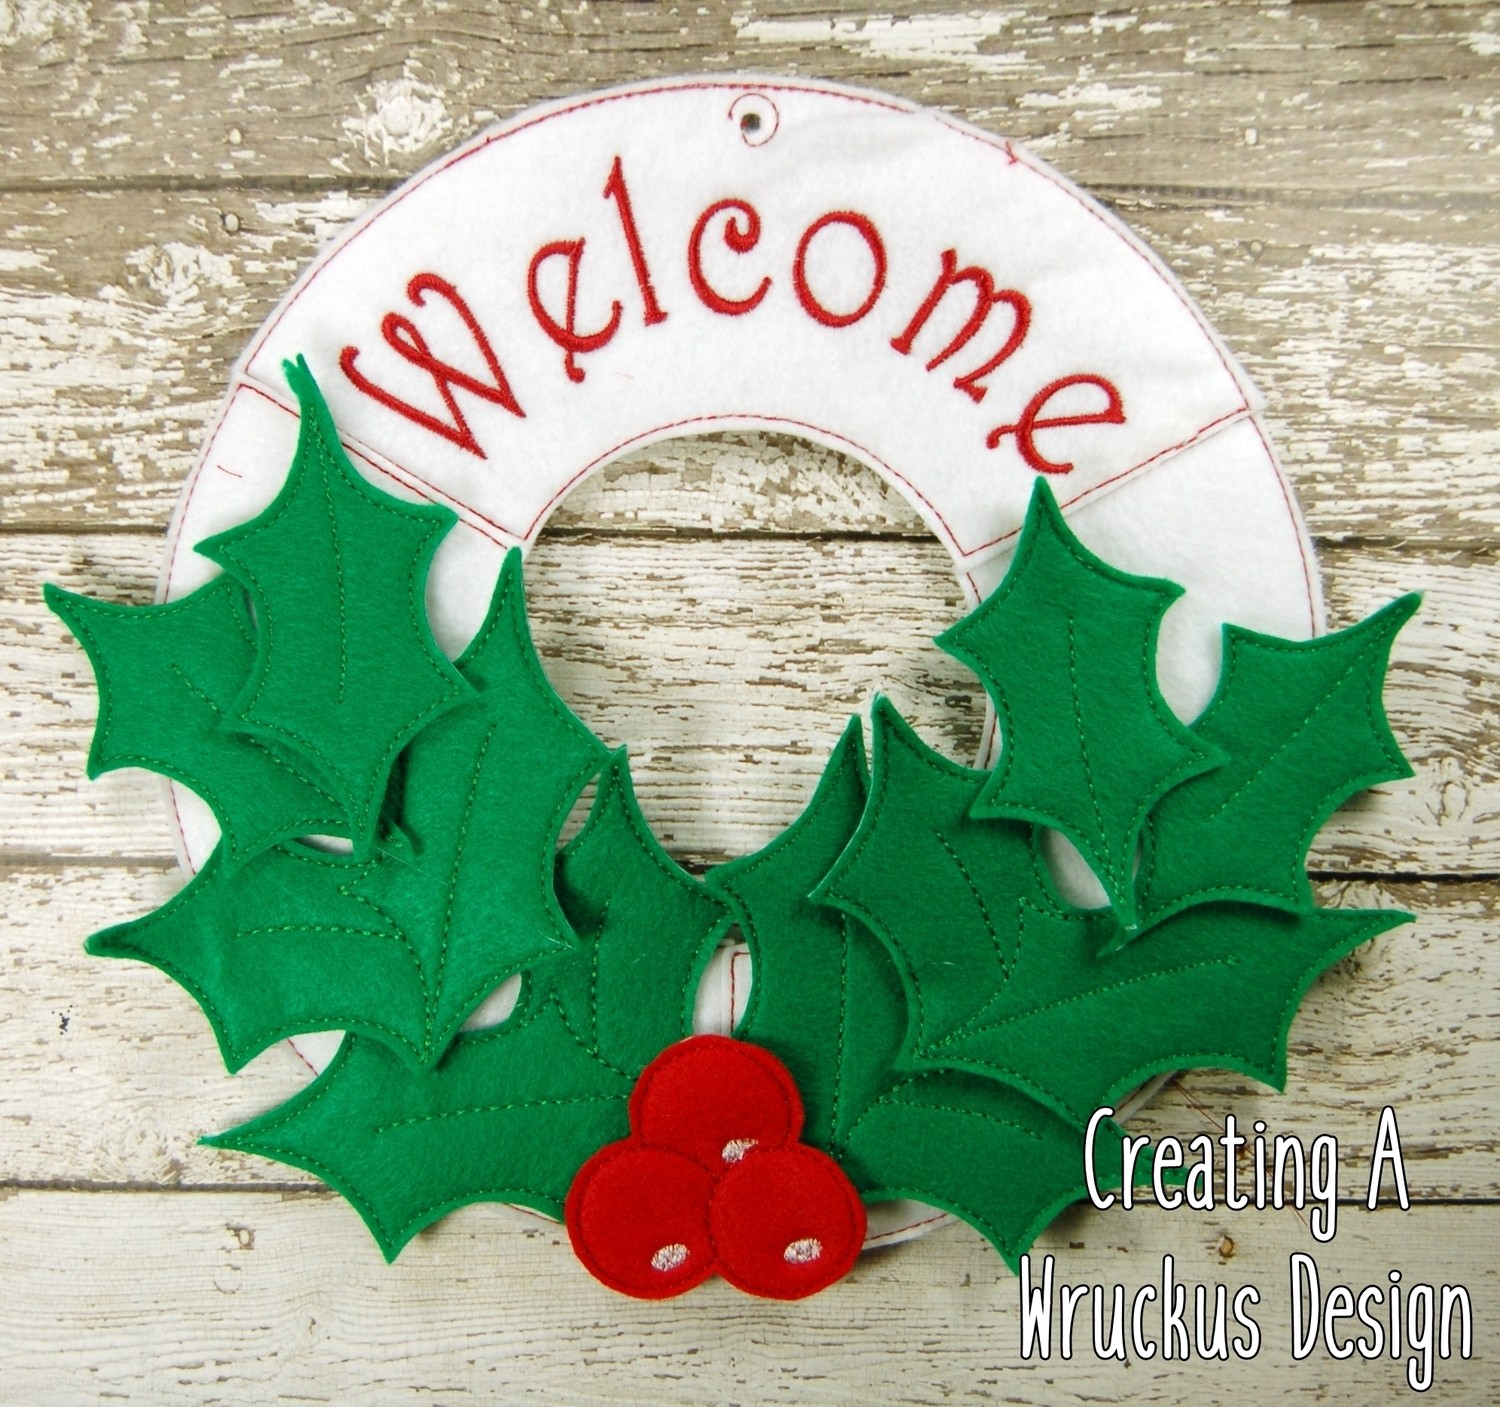 Holly Welcome Wreath